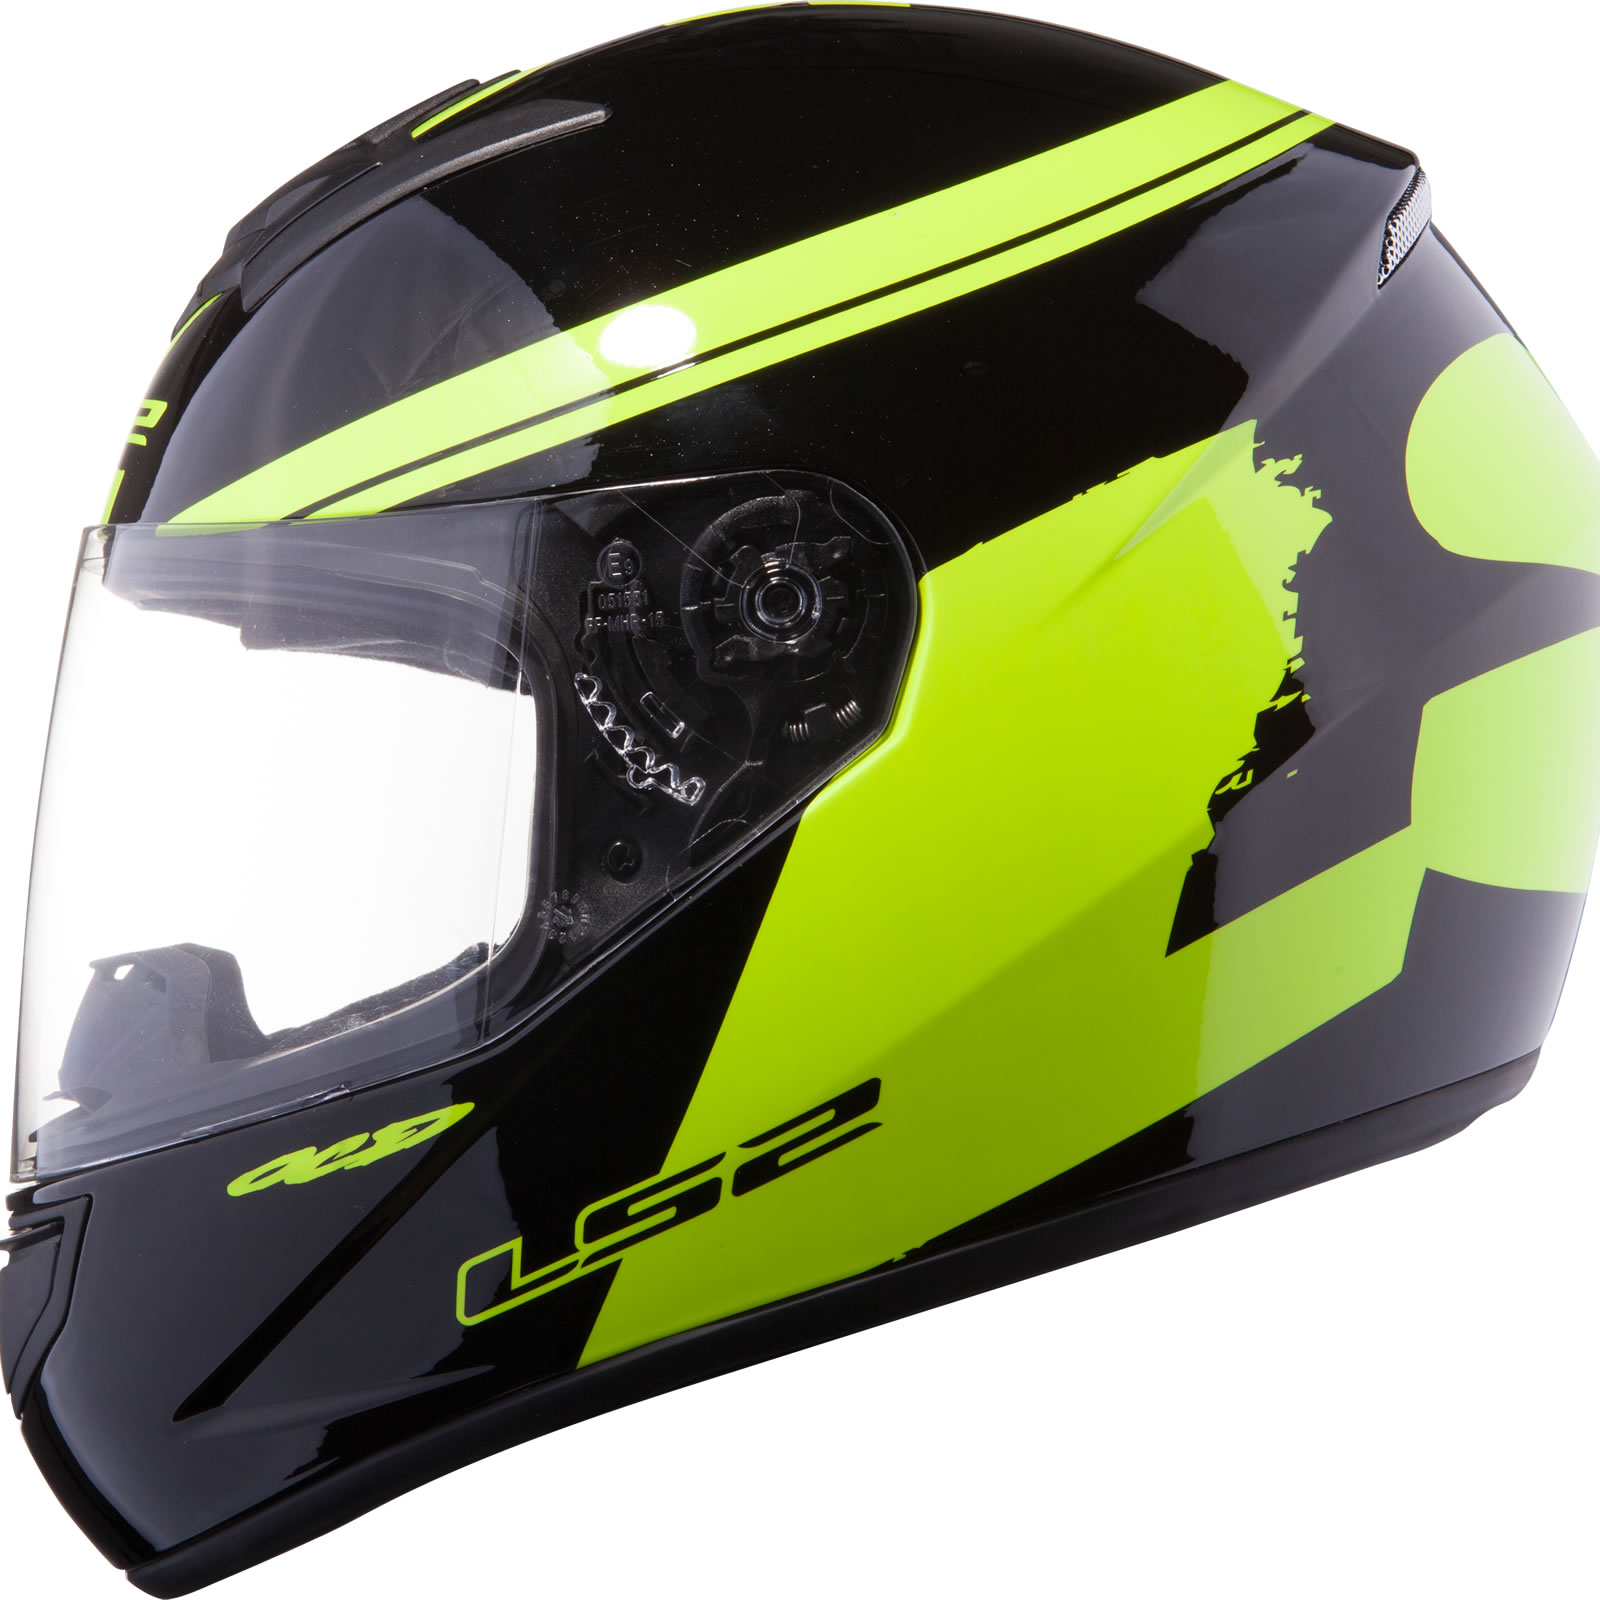 ls2 fluo casque moto scooter int gral course. Black Bedroom Furniture Sets. Home Design Ideas